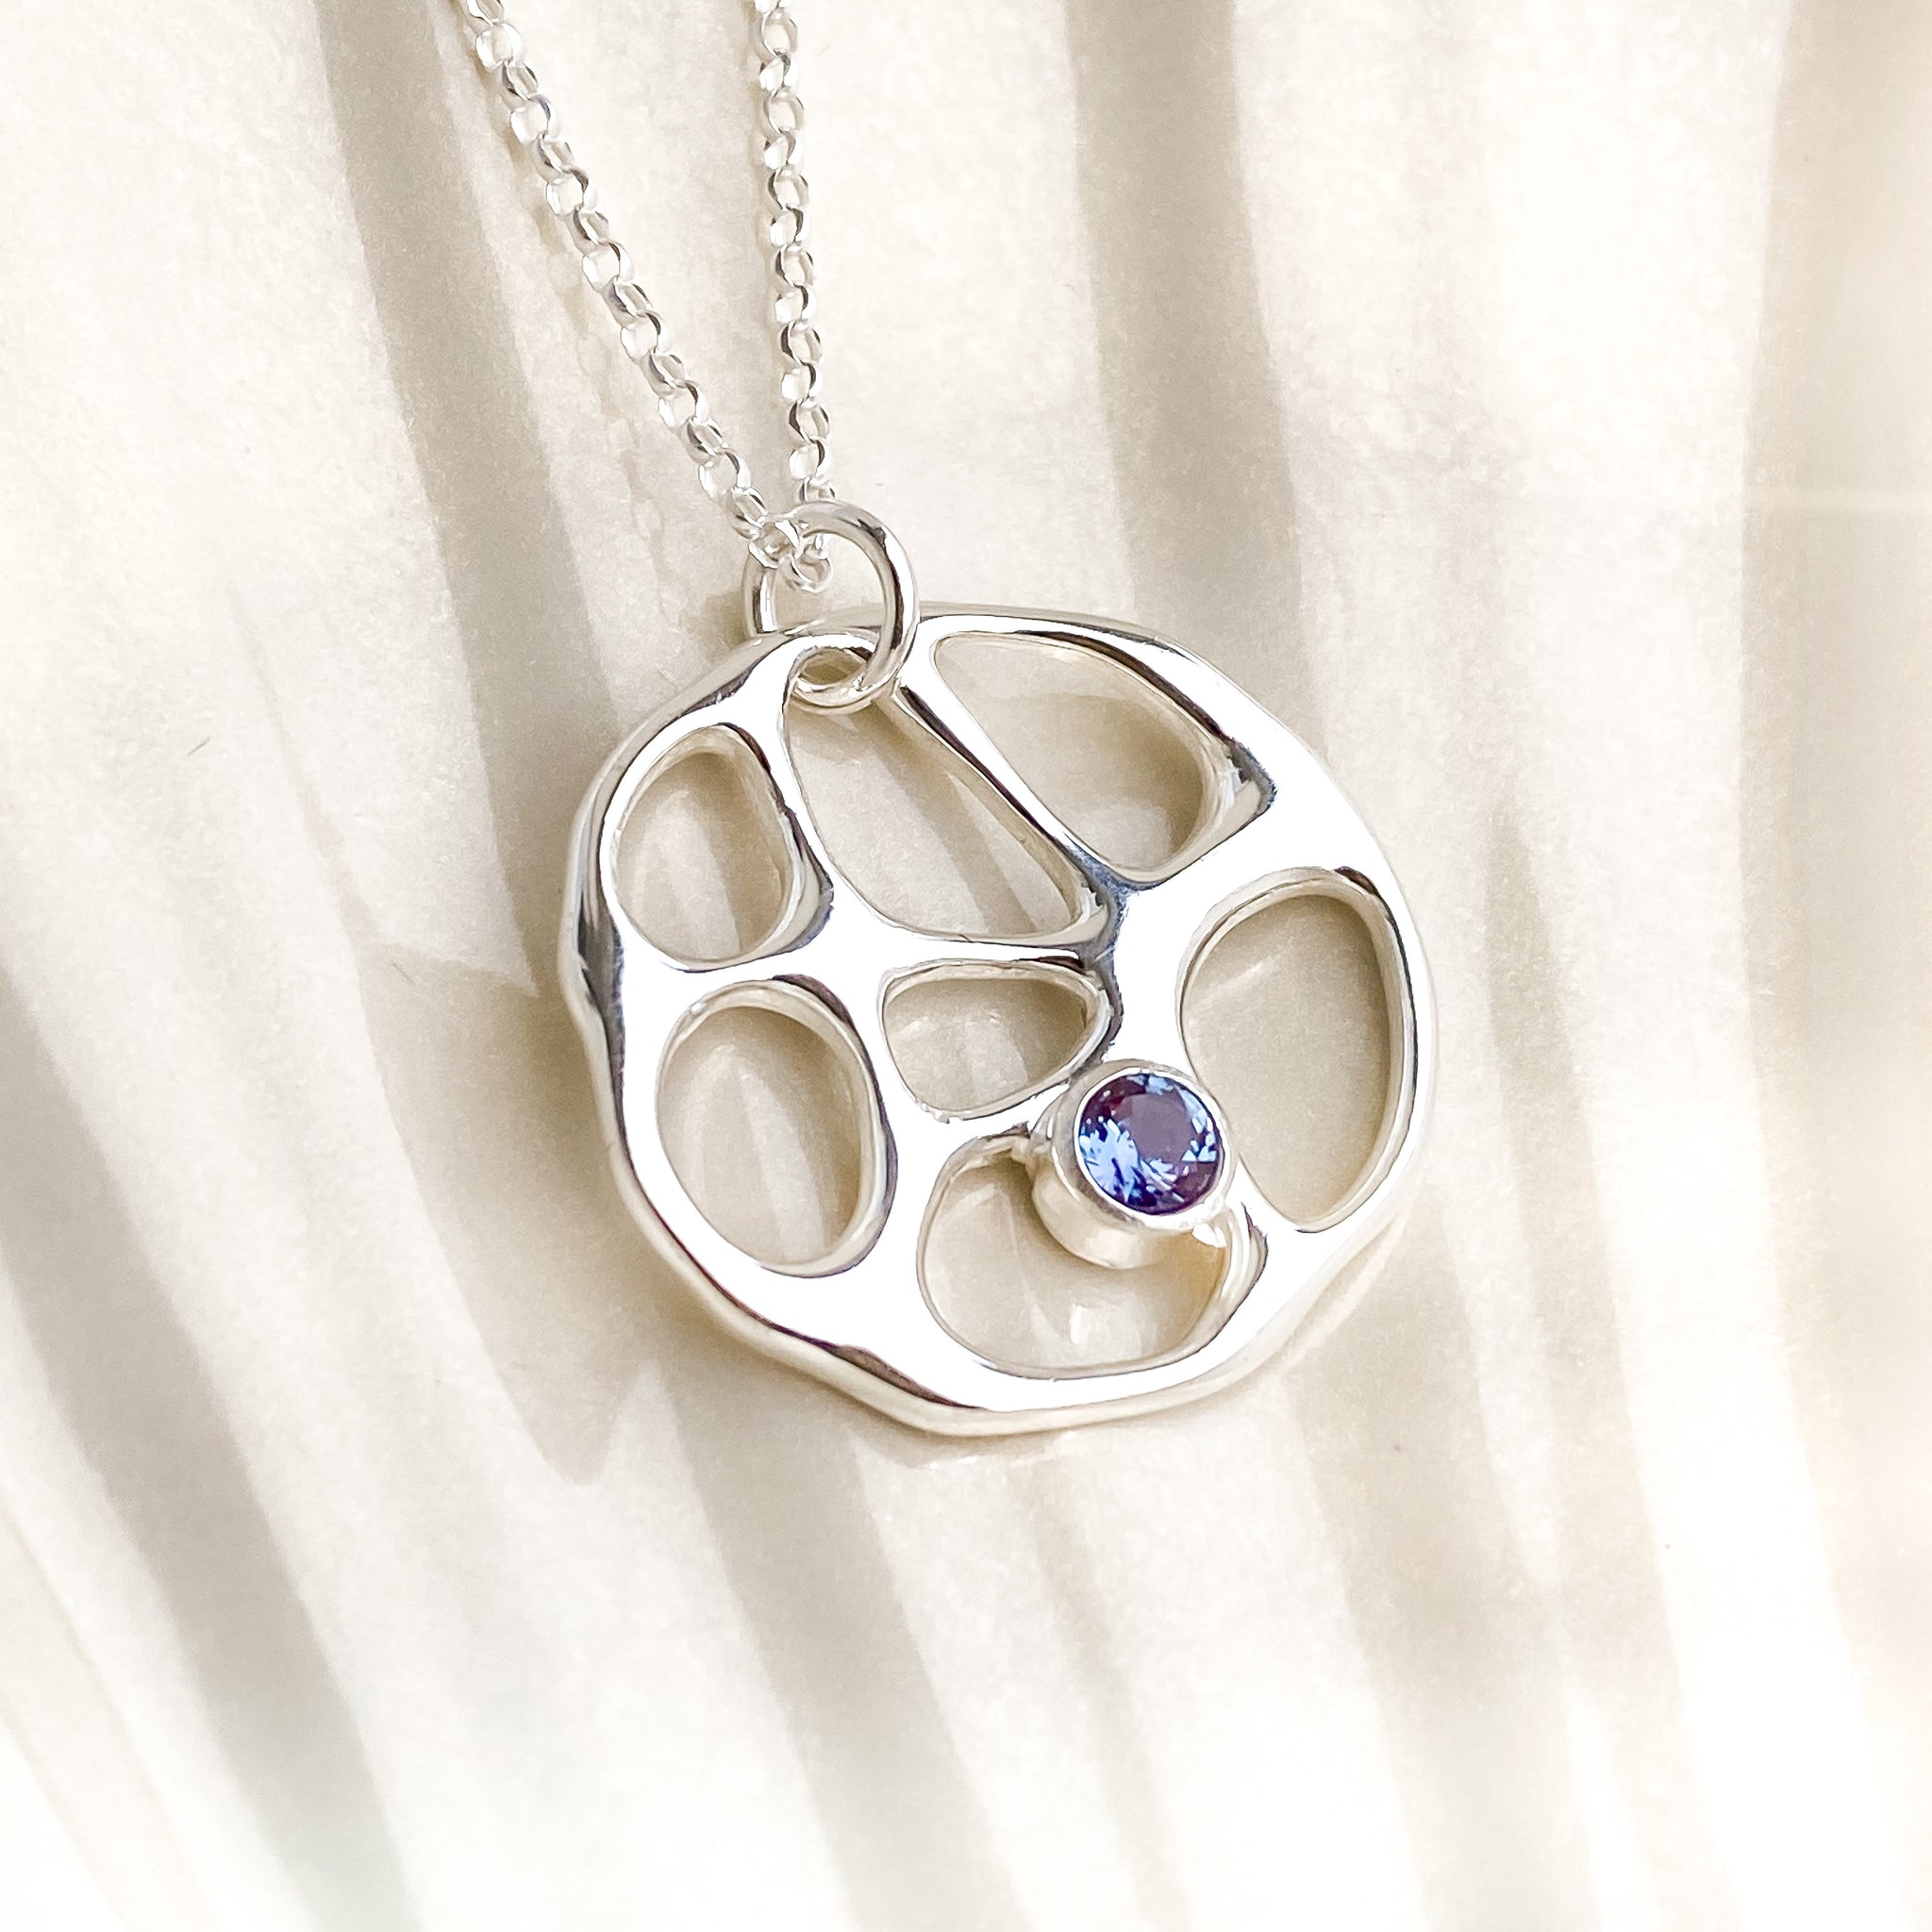 Silver Infinity Necklace with Alexandrite